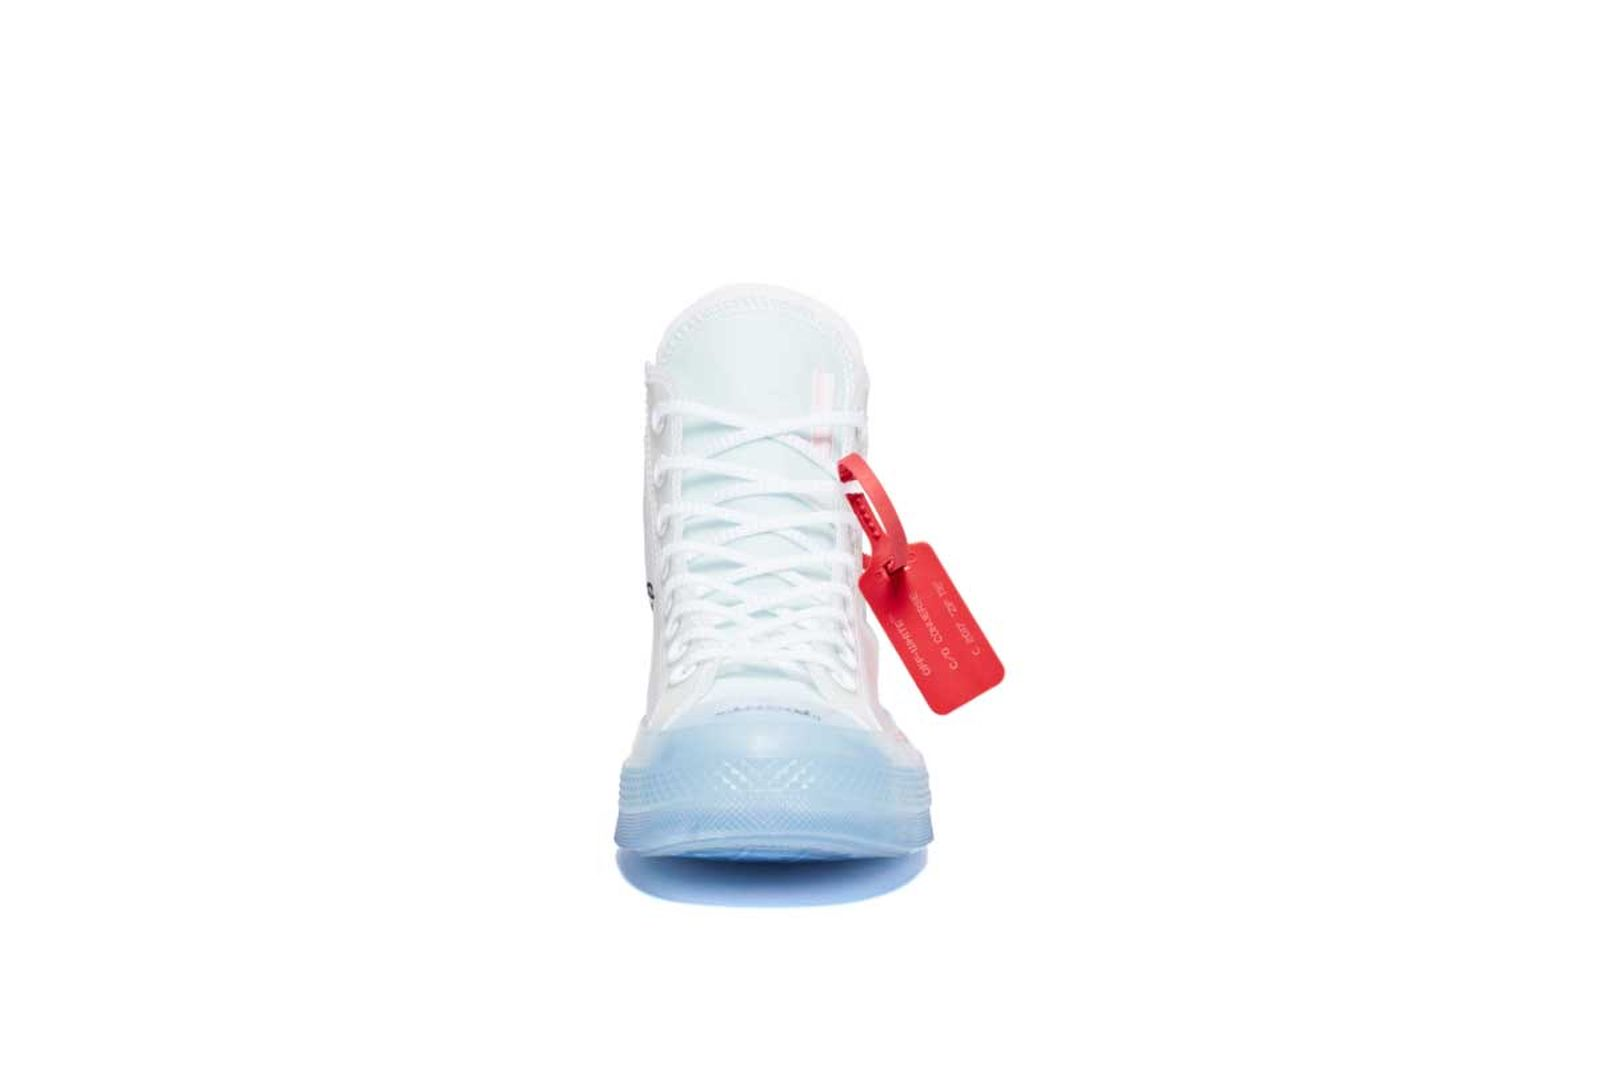 virgil-abloh-converse-all-star-release-date-price-2018-018